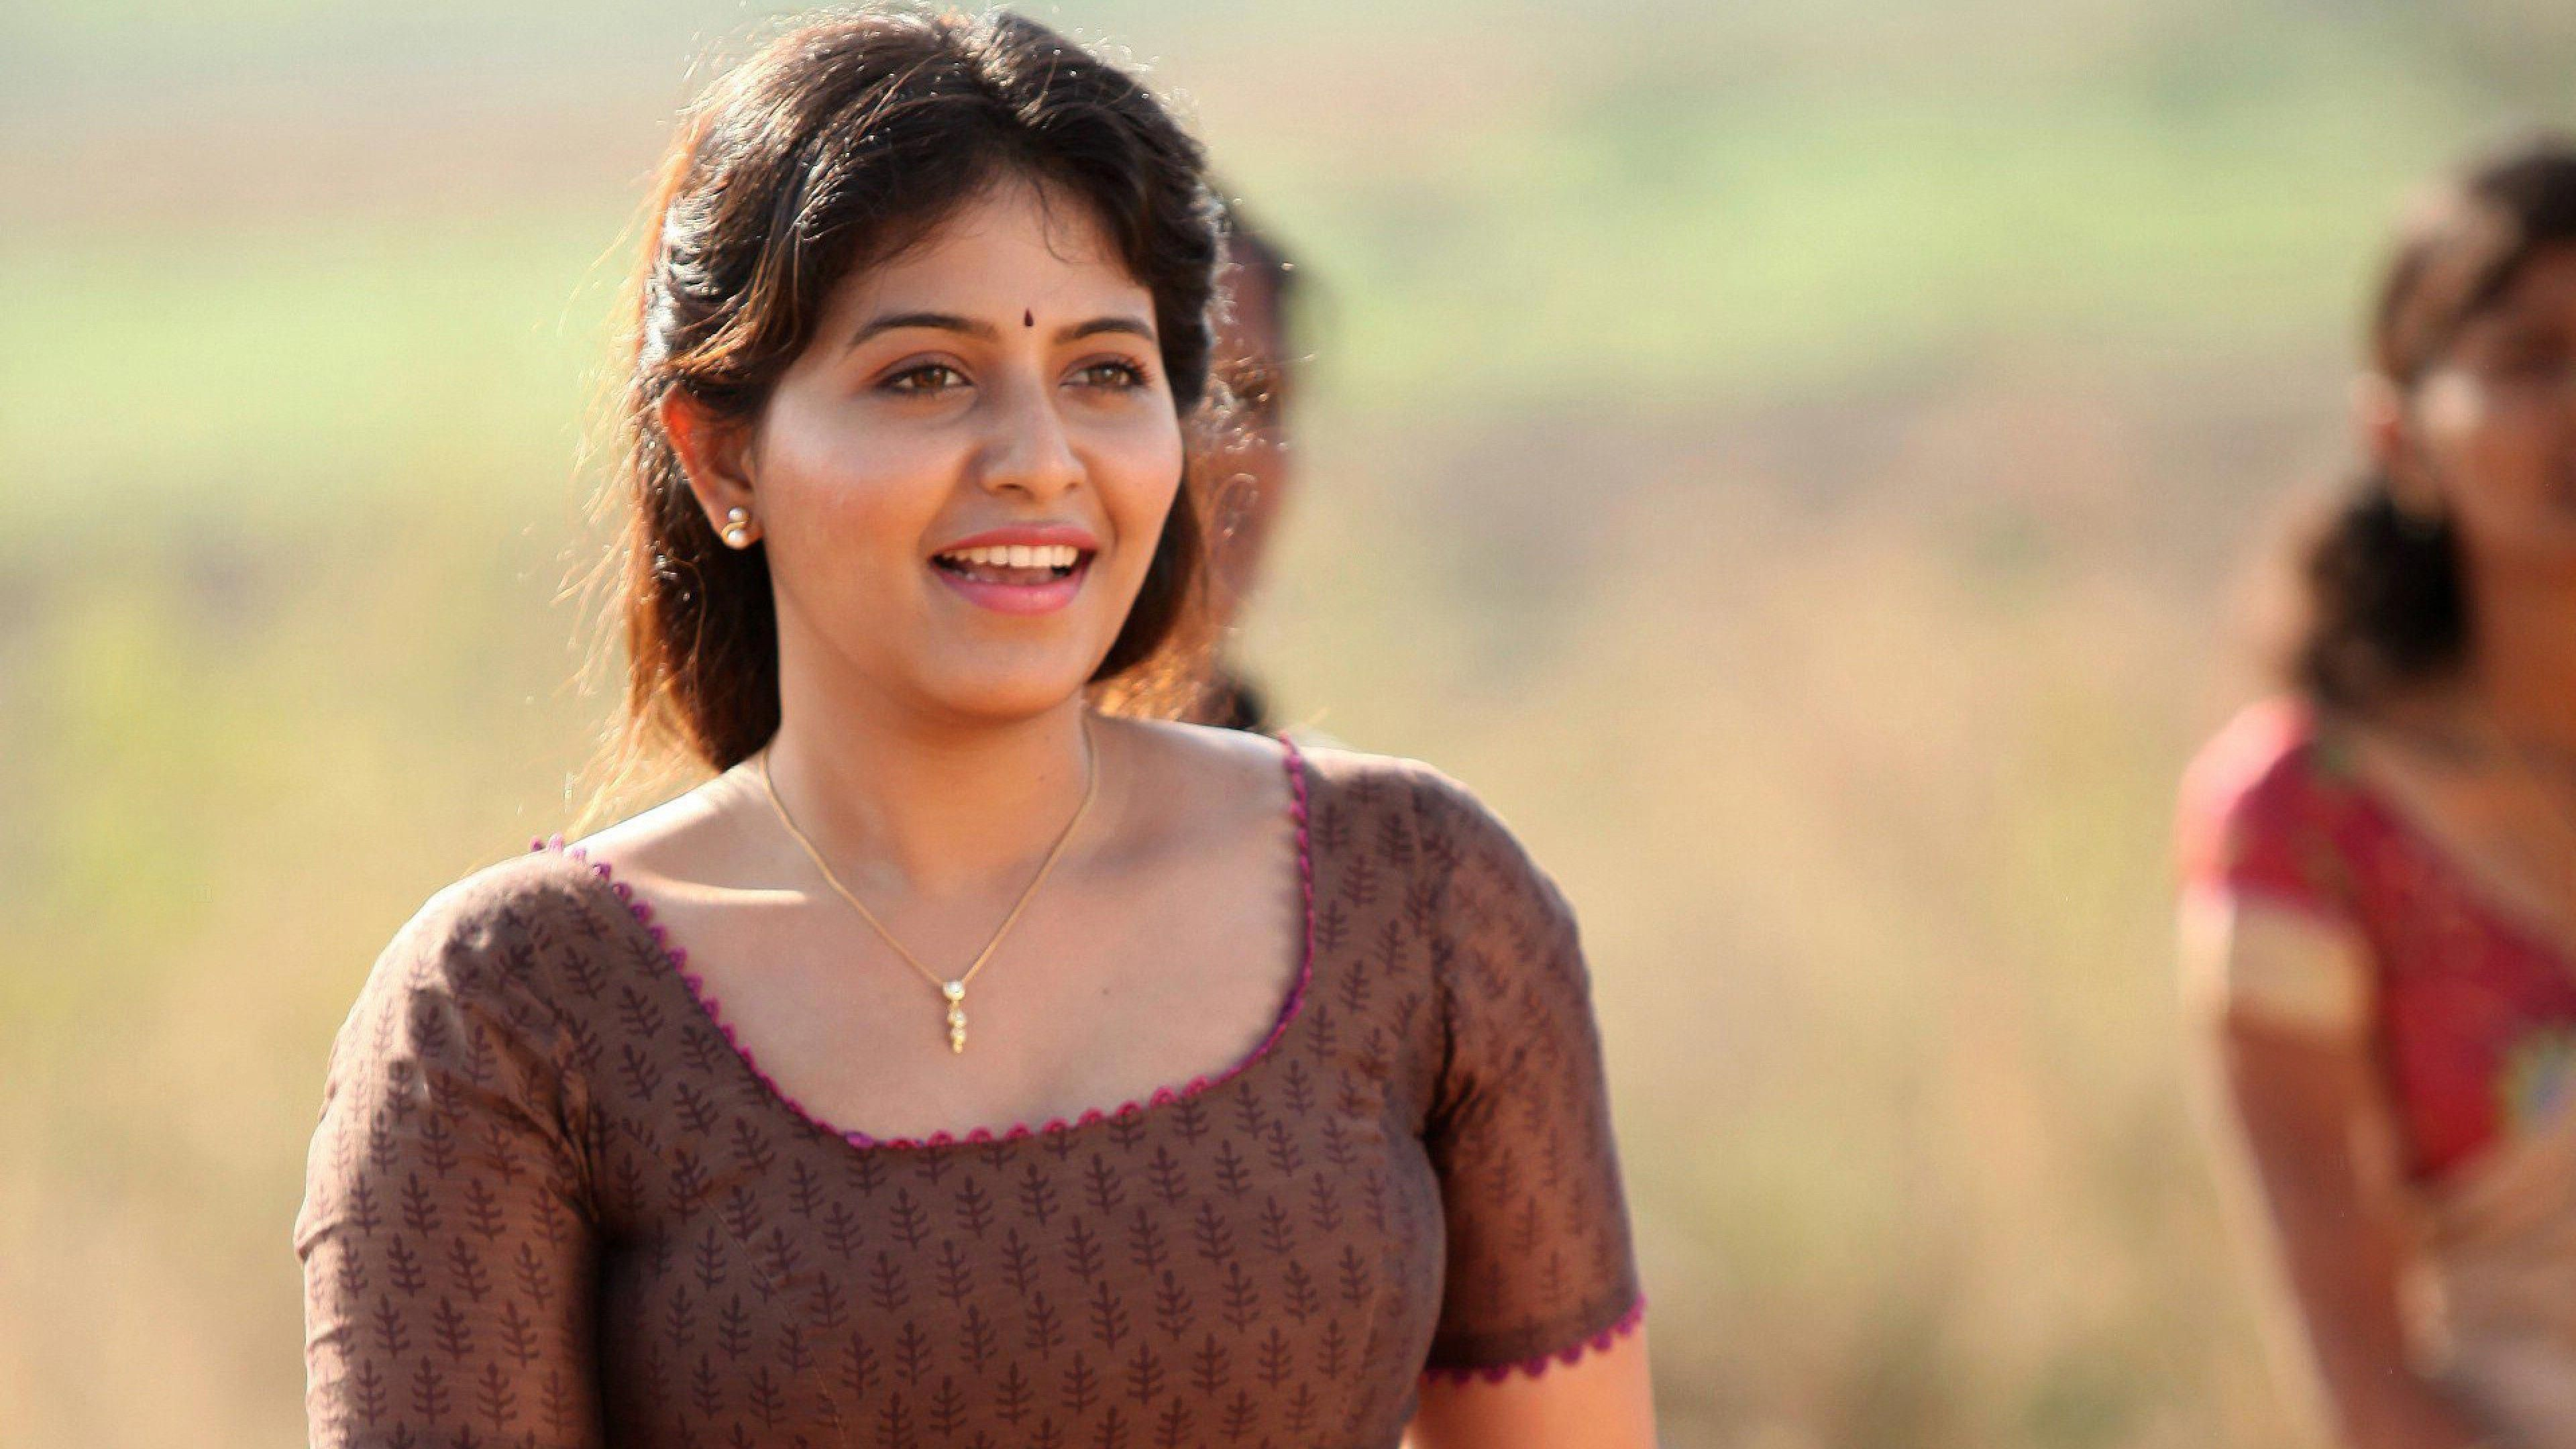 Tamil Actress Hd Wallpapers 1080p Beauty Smile Photography Happy Neck Photo Shoot Abdomen 1307777 Wallpaperkiss